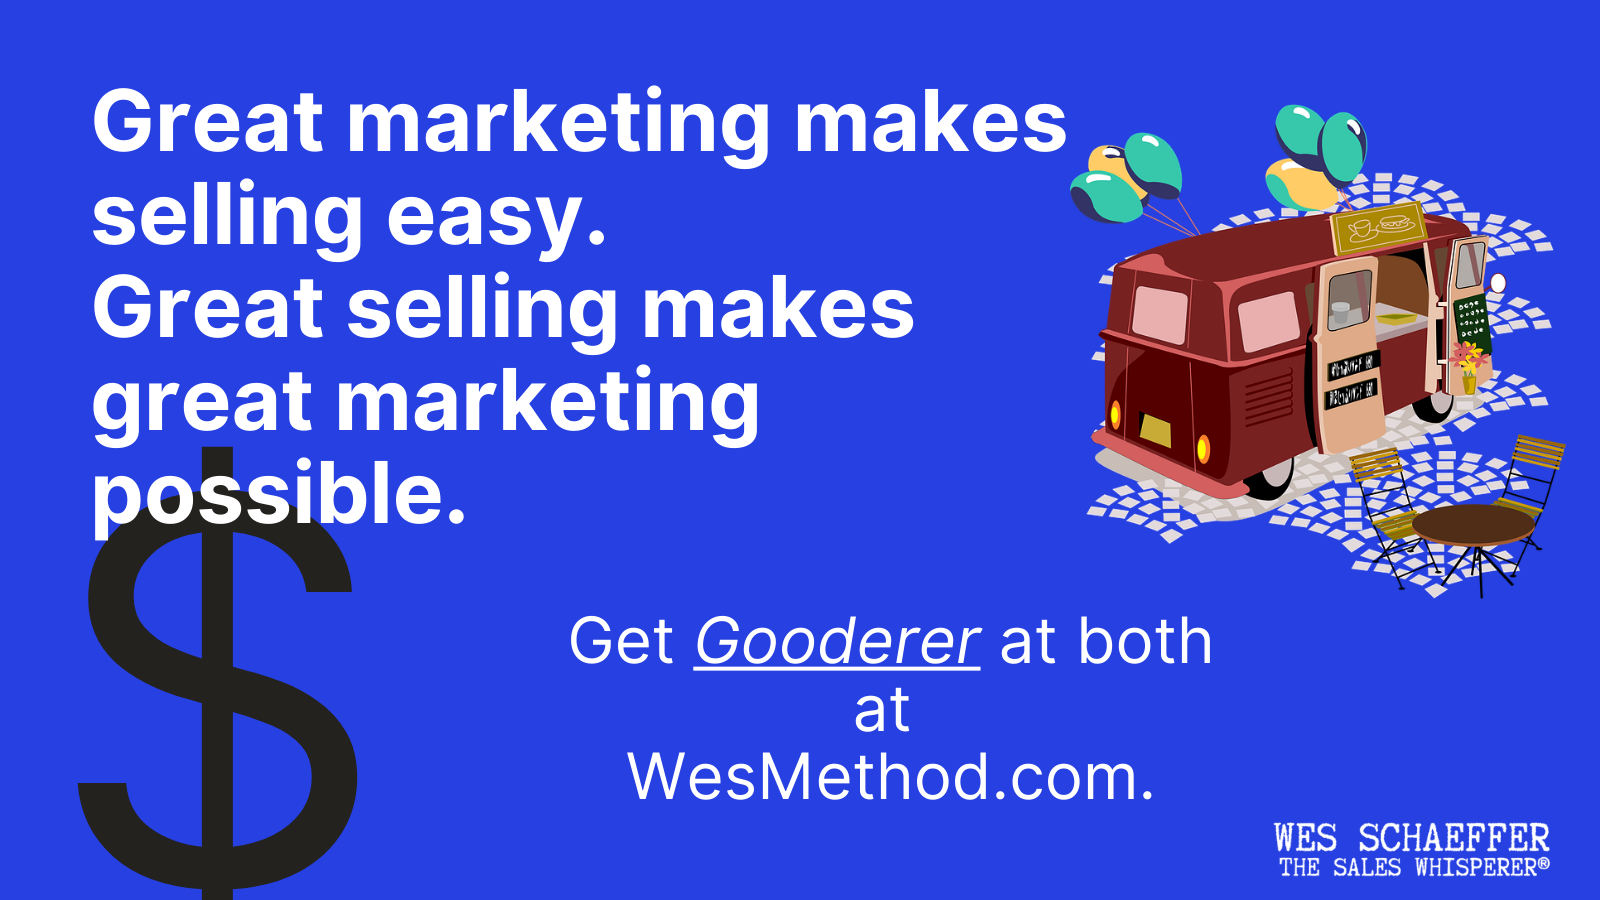 great marketing great selling Wes Schaeffer, The Sales Whisperer®